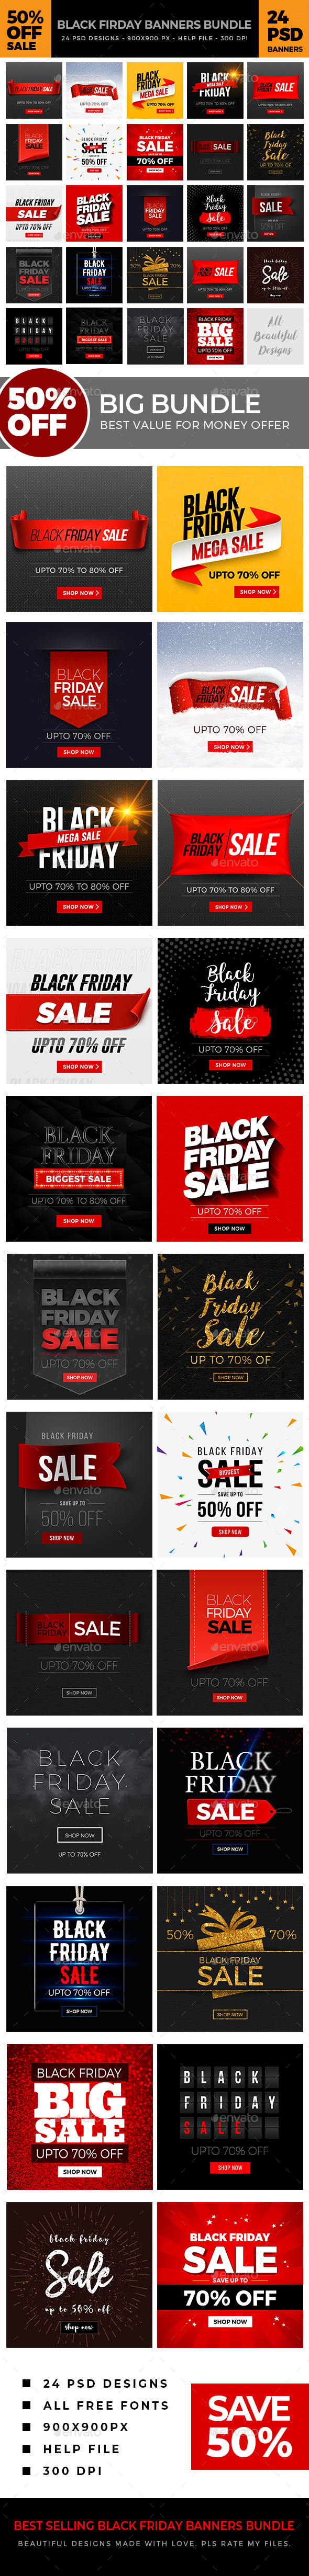 Black Friday Banners Bundle - Banners & Ads Web Elements